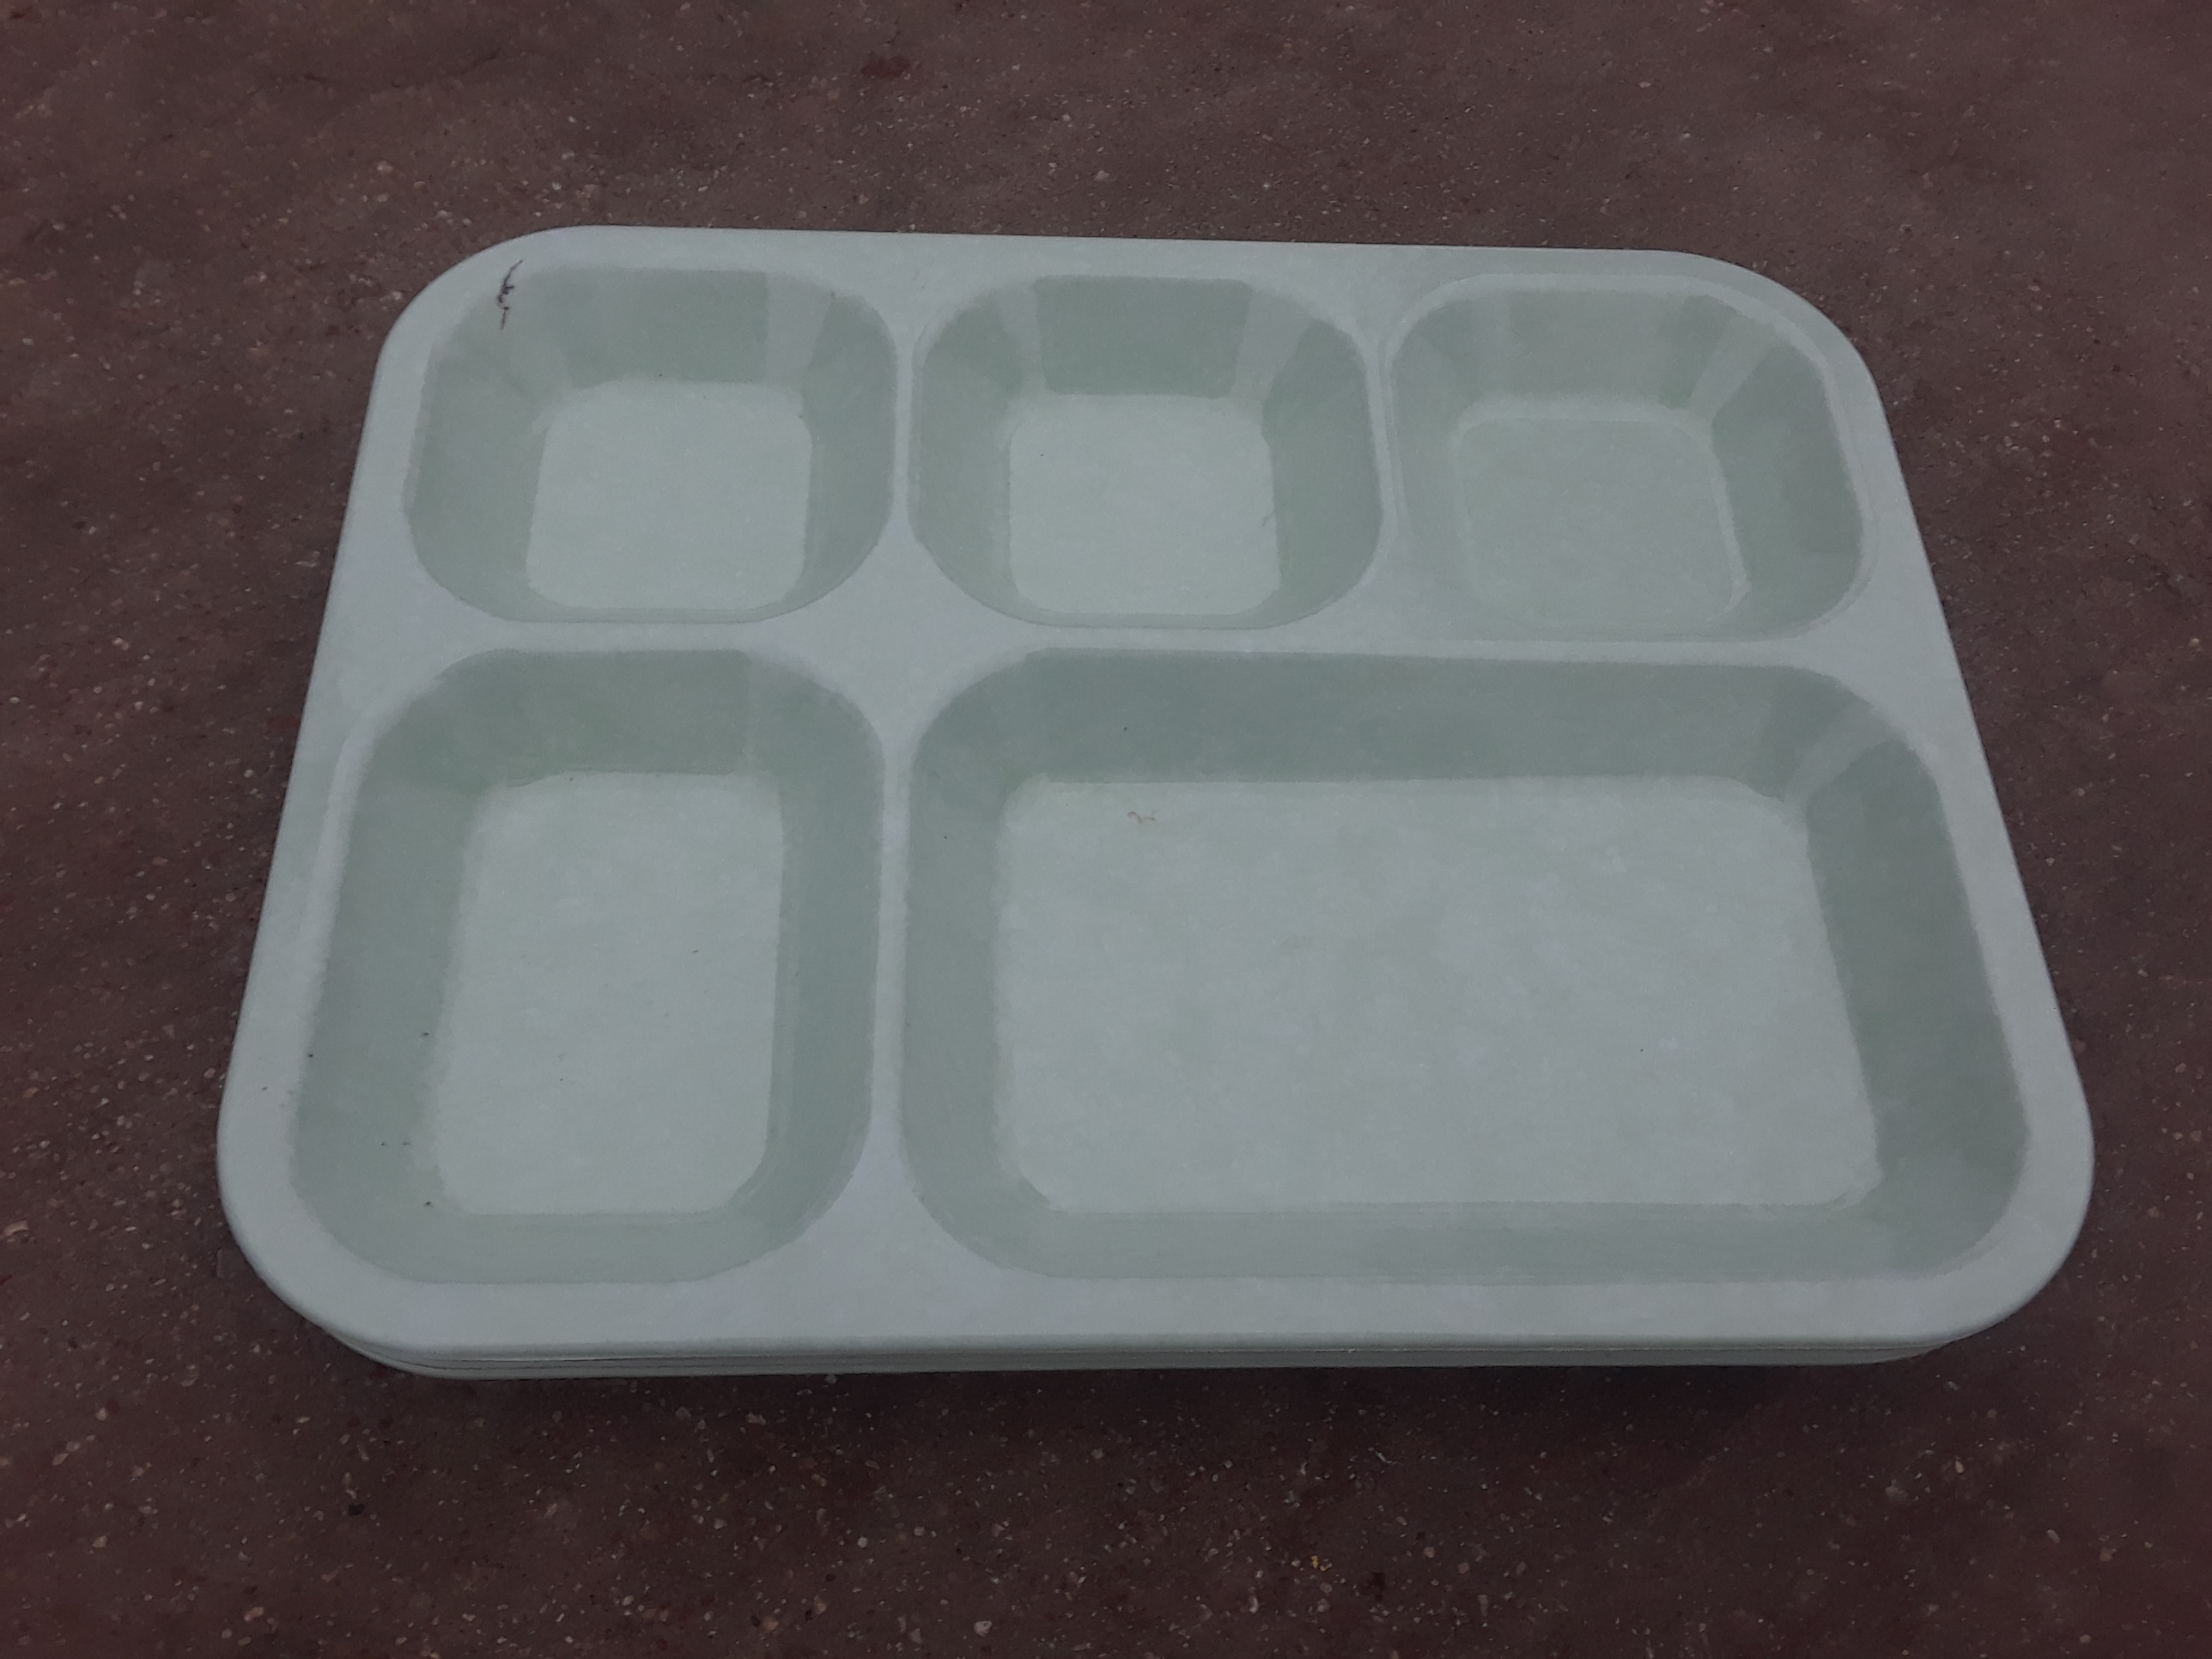 Plastic Serving Tray with Portions Set of 4 trays